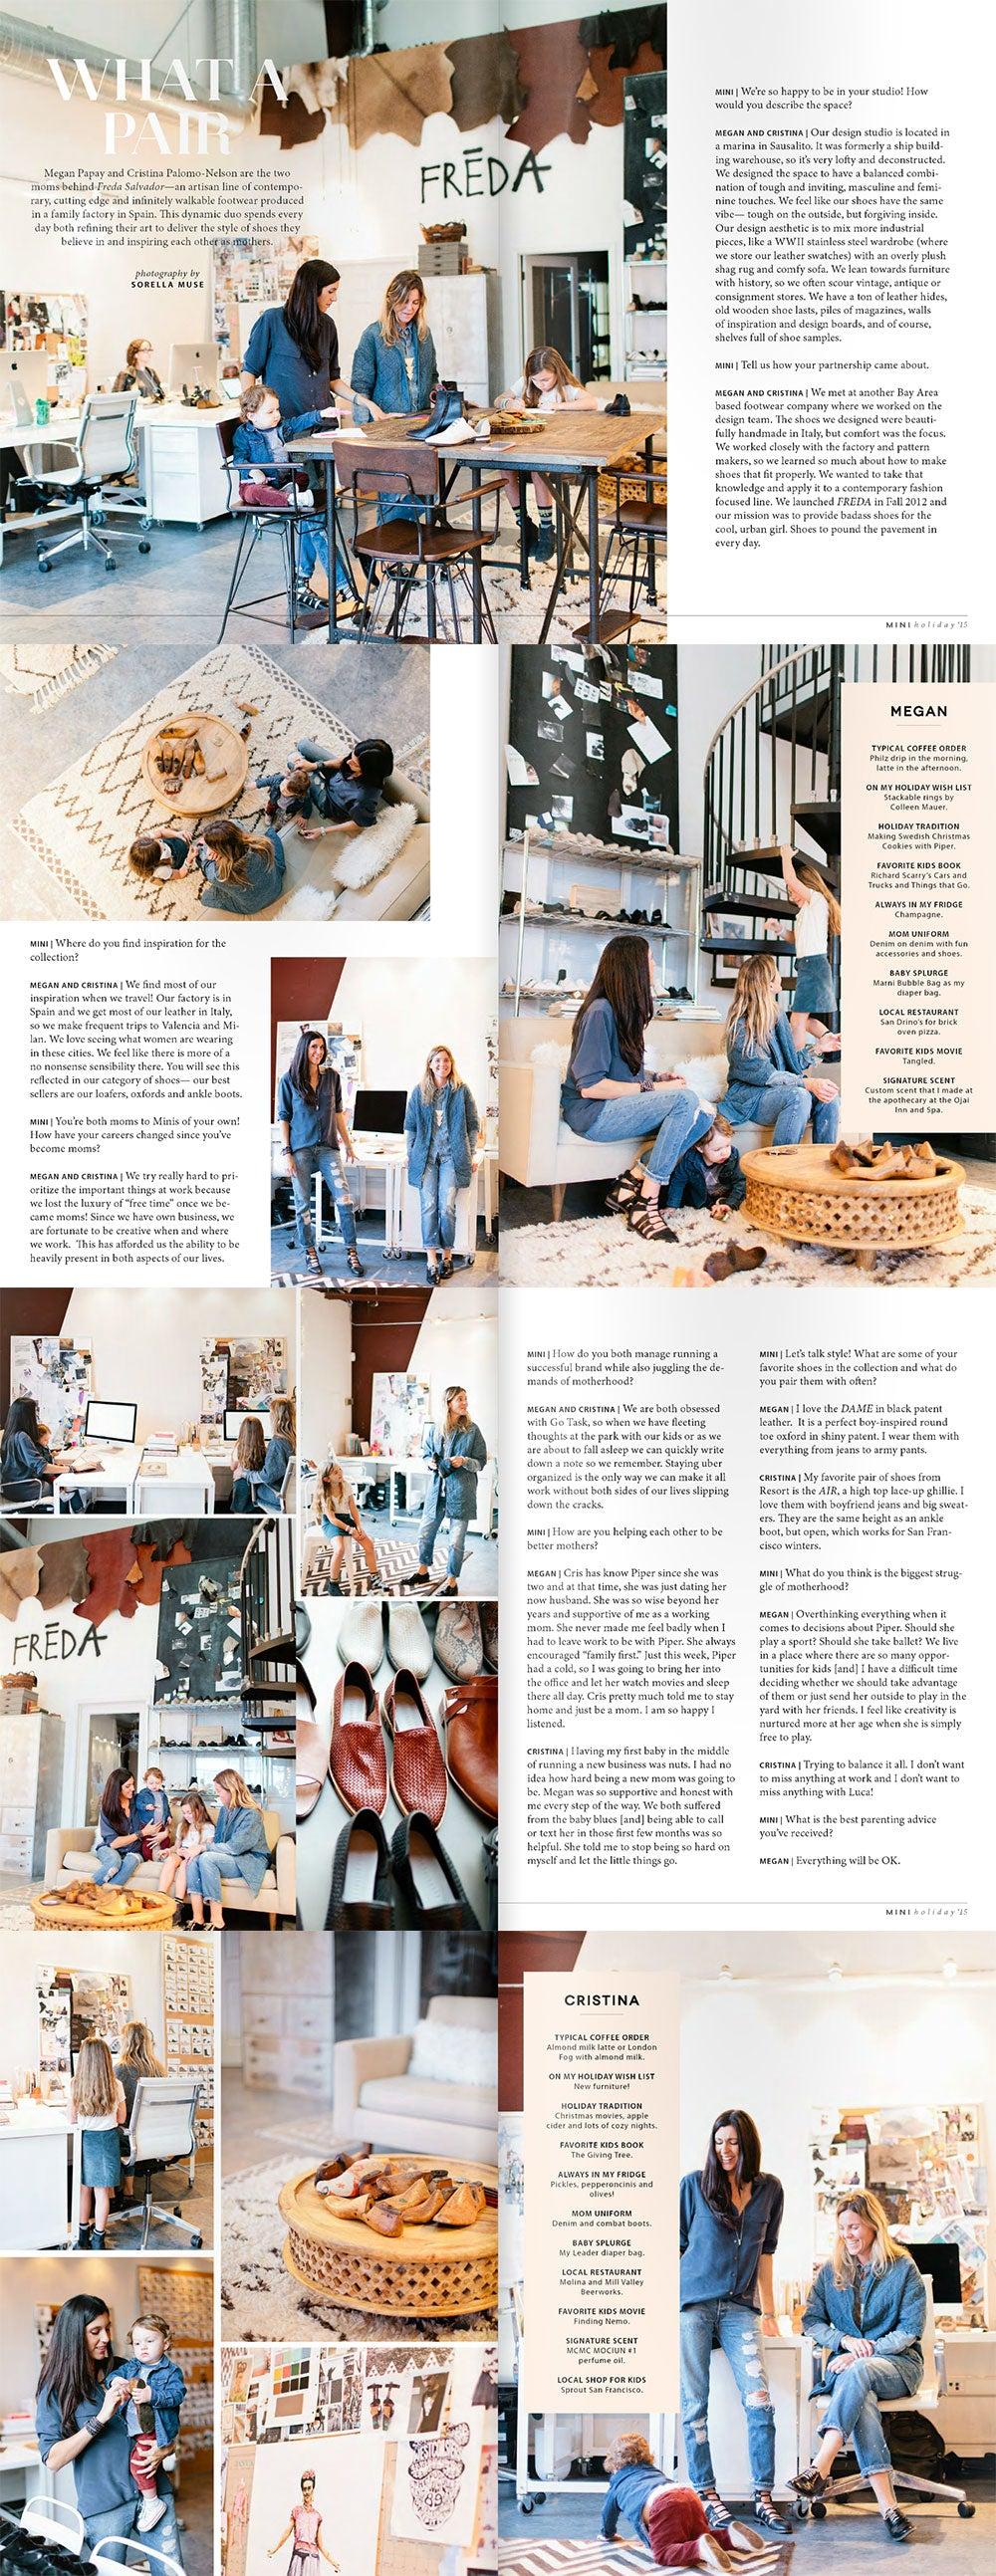 Mini Magazine Featuring Cristina Palomo-Nelson and Megan Papay